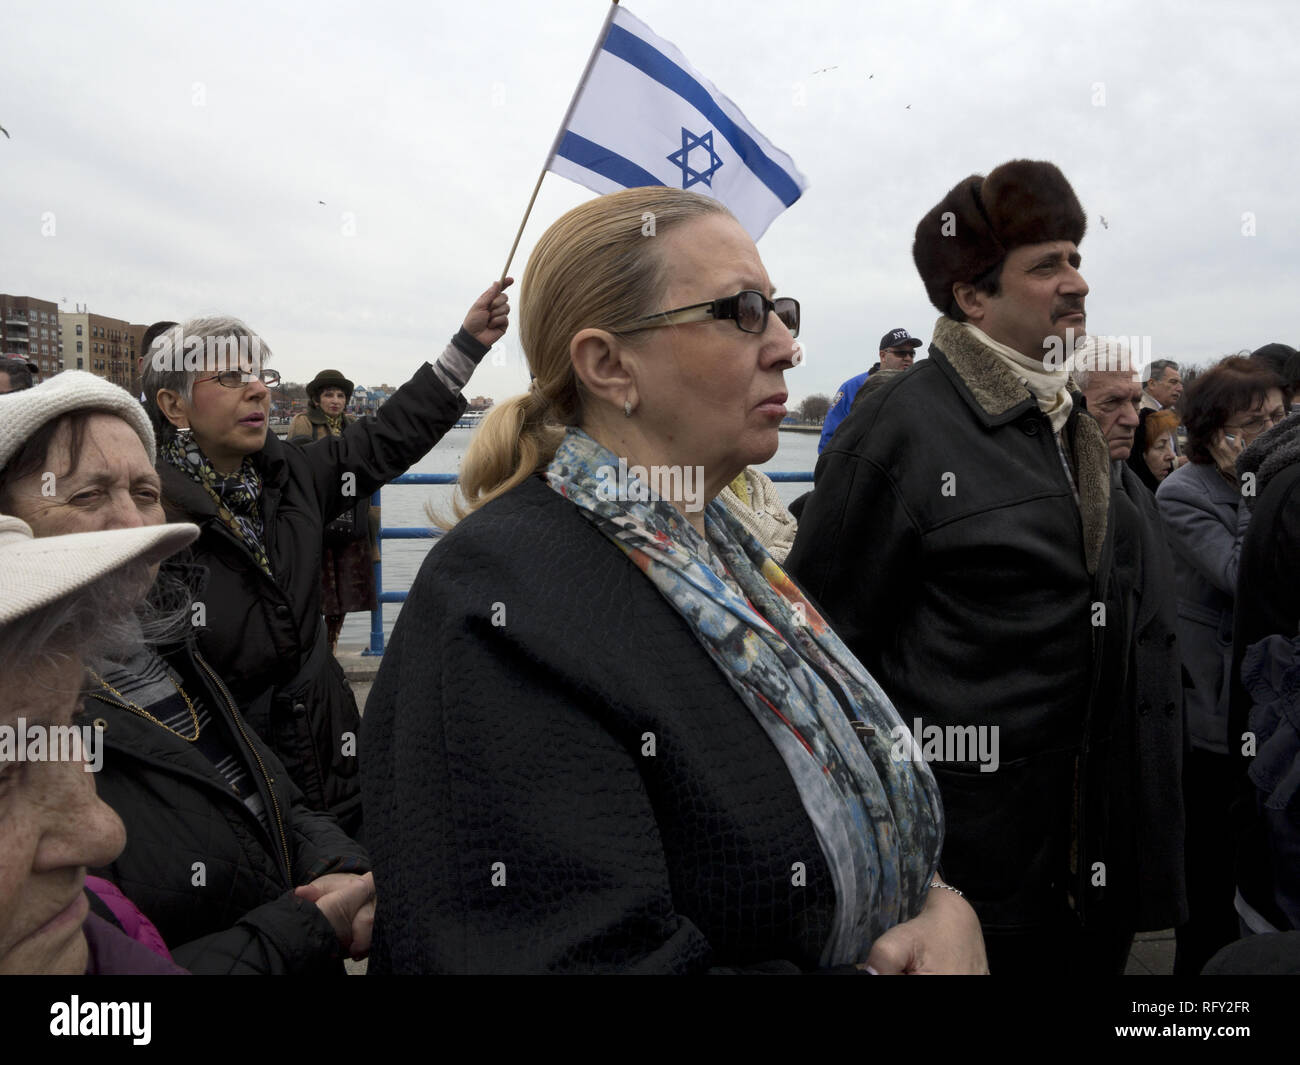 Rally against hatred and Anti-semitism at the Holocaust Memorial Park in Sheepshead Bay in Brooklyn, NY, March 13, 2016. - Stock Image